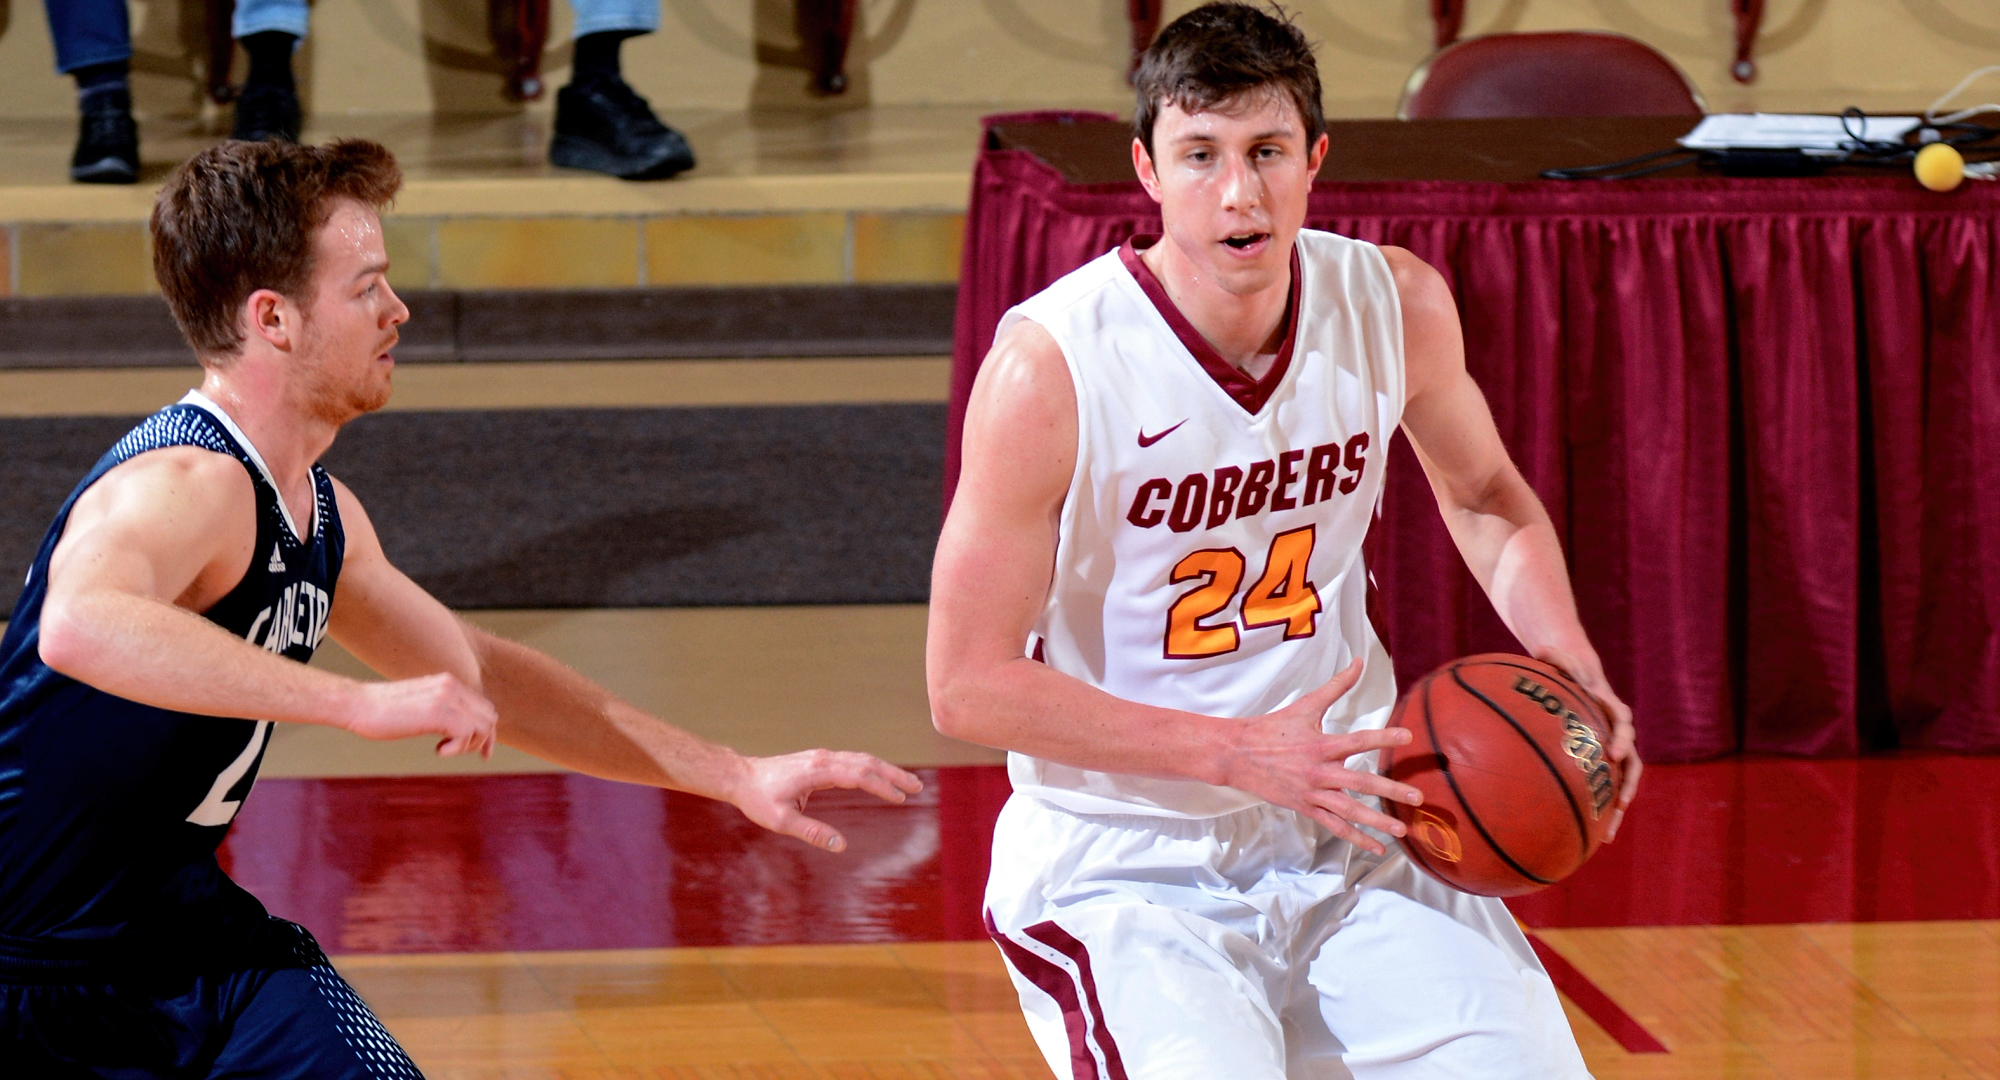 Senior Austin Nelson had a career-high 28 points in the Cobbers' season opener at Minn.-Morris.